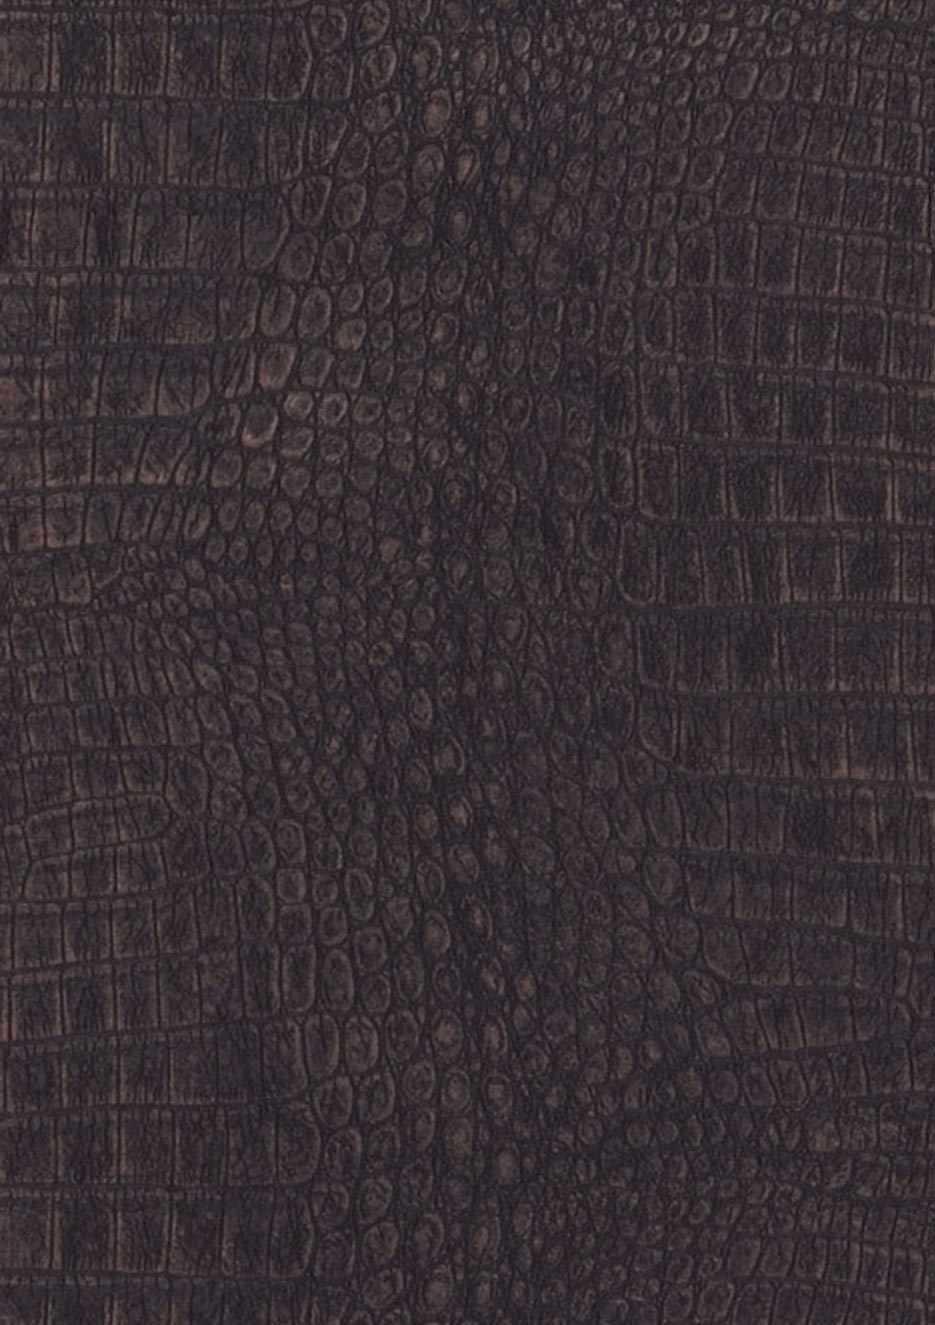 wallpaper alligator bronze black brown wallpaper from. Black Bedroom Furniture Sets. Home Design Ideas